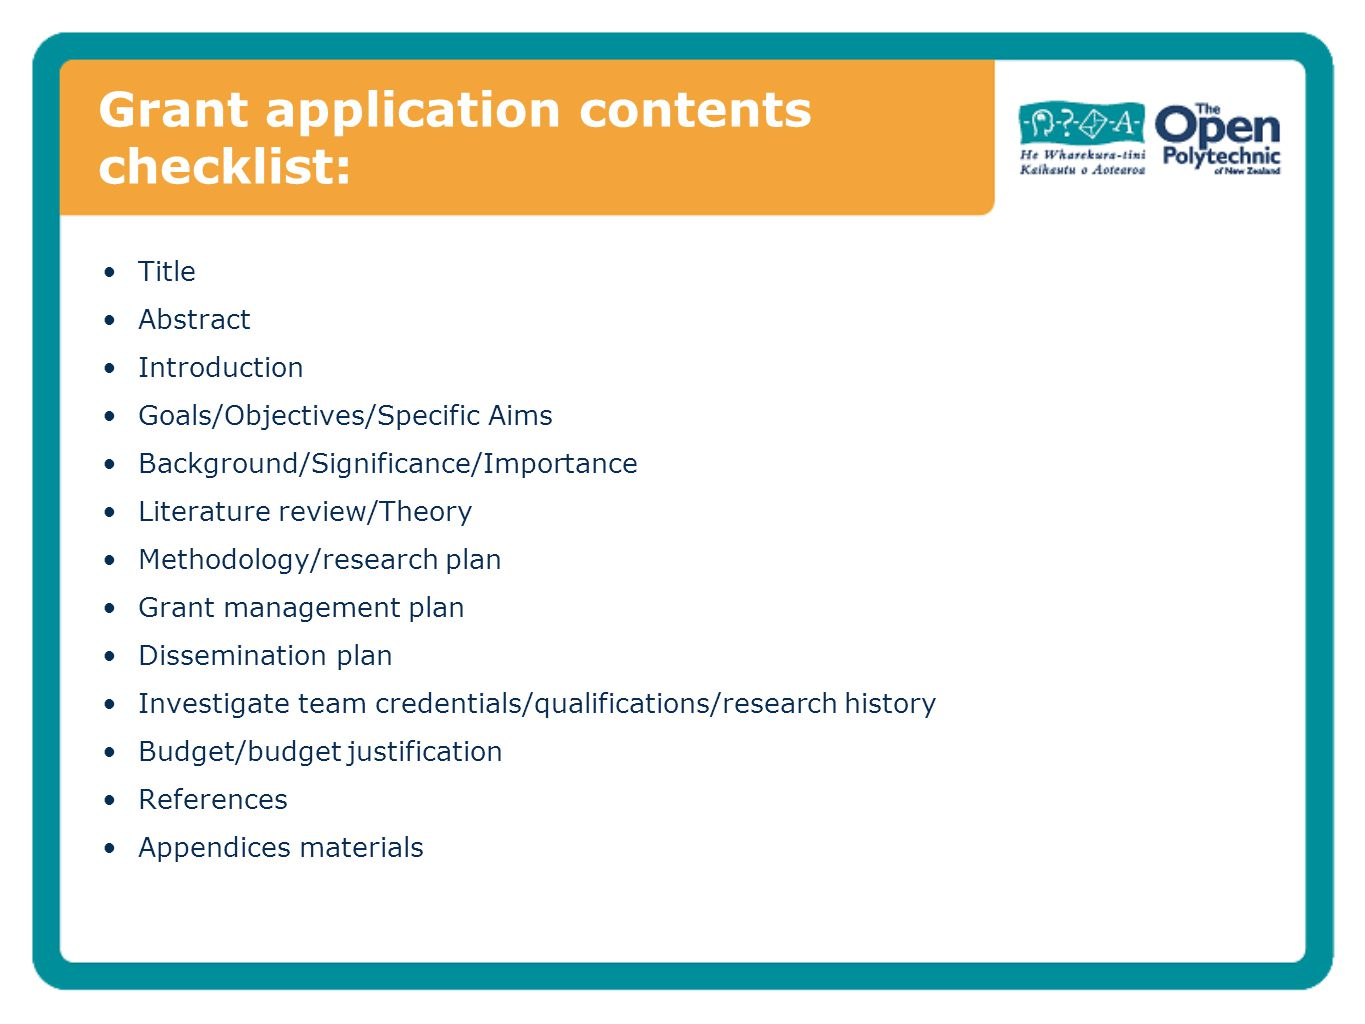 Grant application contents checklist: Title Abstract Introduction Goals/Objectives/Specific Aims Background/Significance/Importance Literature review/Theory Methodology/research plan Grant management plan Dissemination plan Investigate team credentials/qualifications/research history Budget/budget justification References Appendices materials